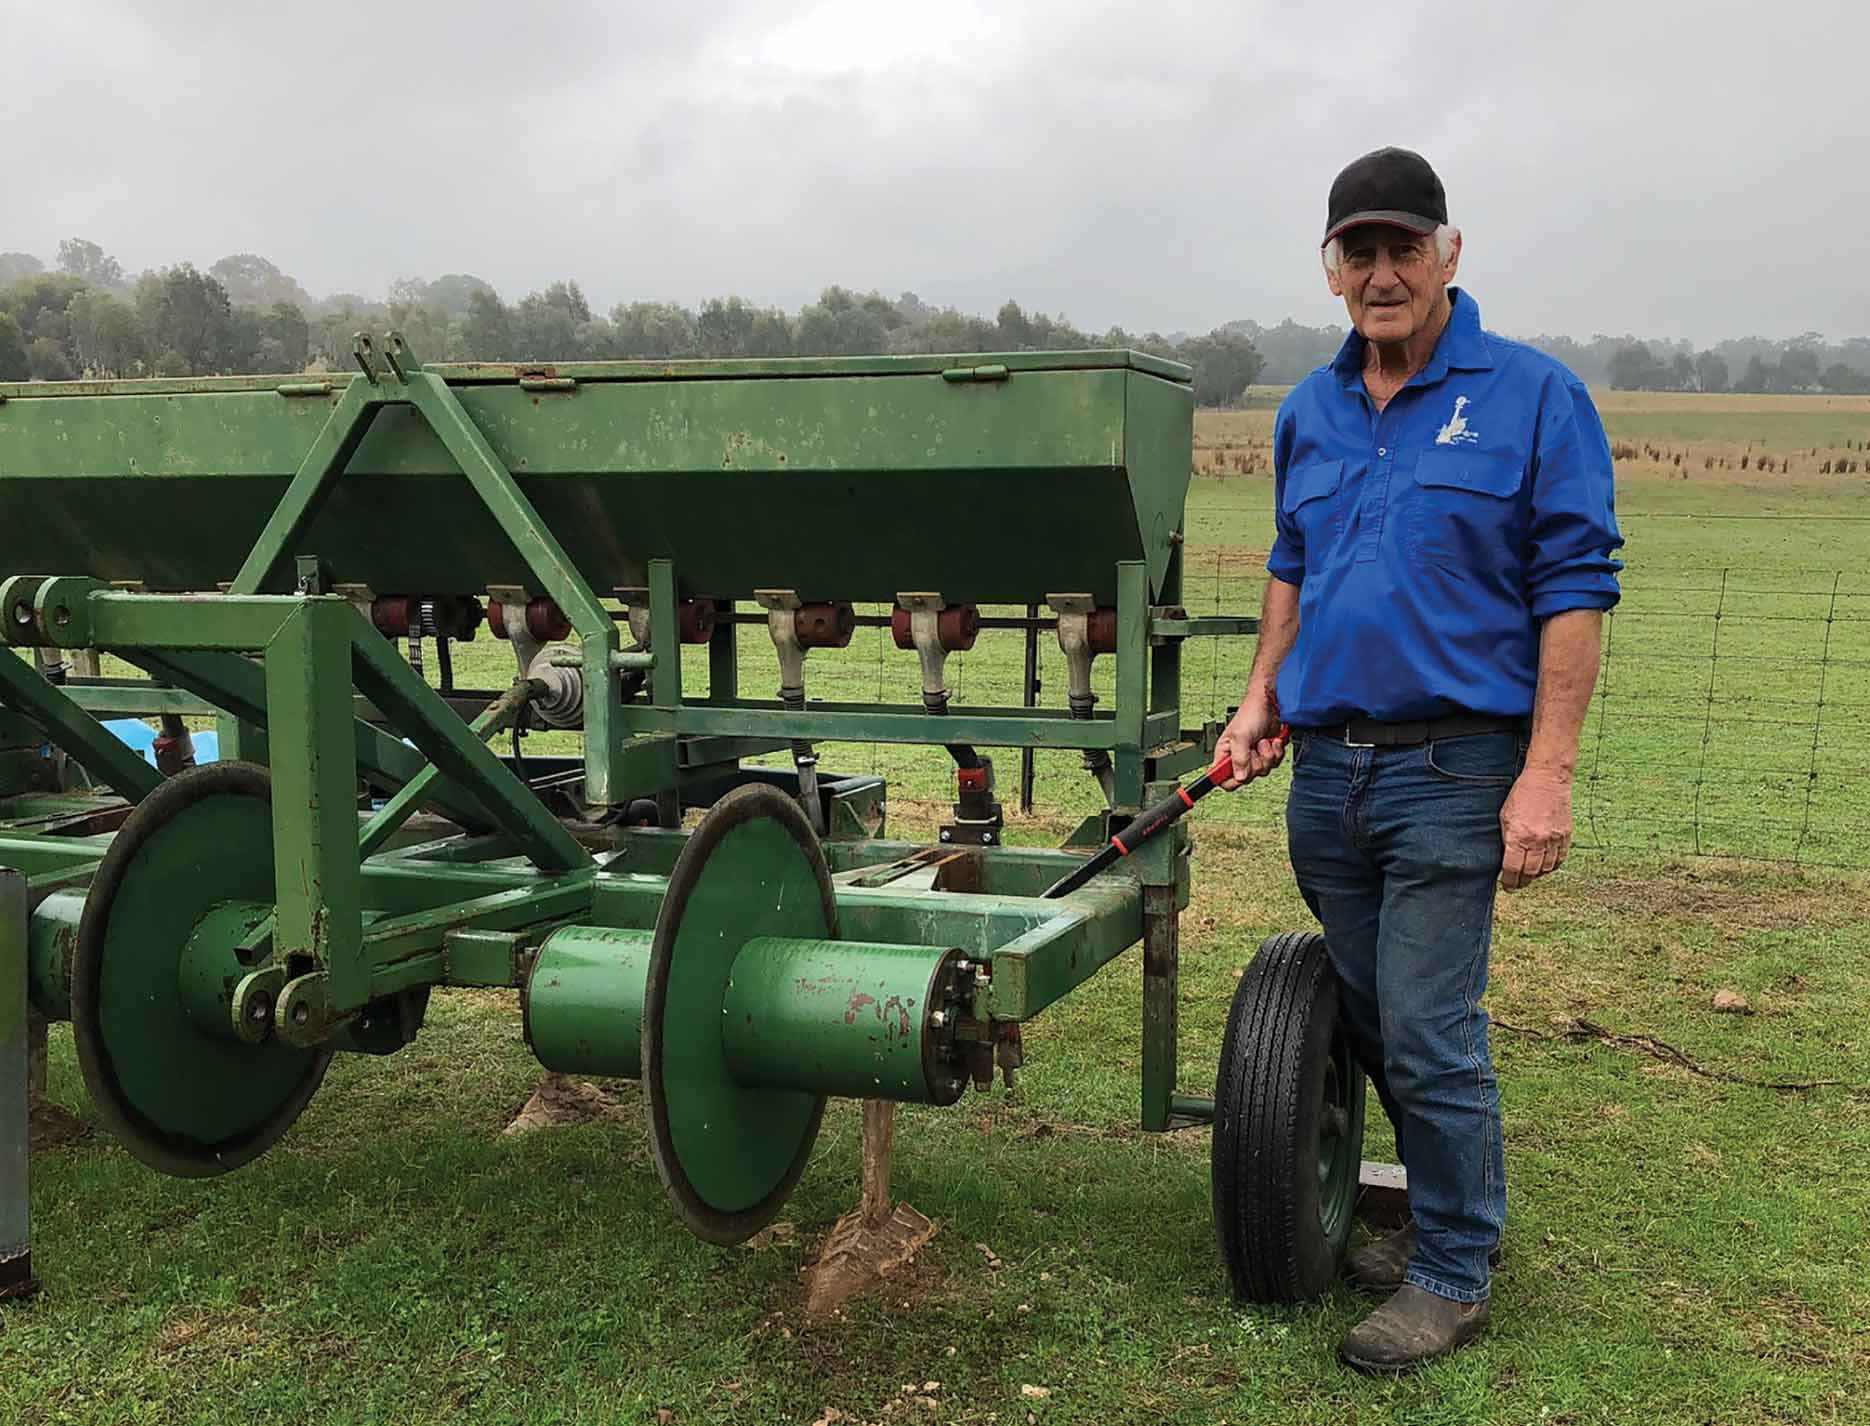 Ken Heywood from Warrenbayne, near Violet Town, demonstrating the soil aeration slipper underneath the aeration plough.